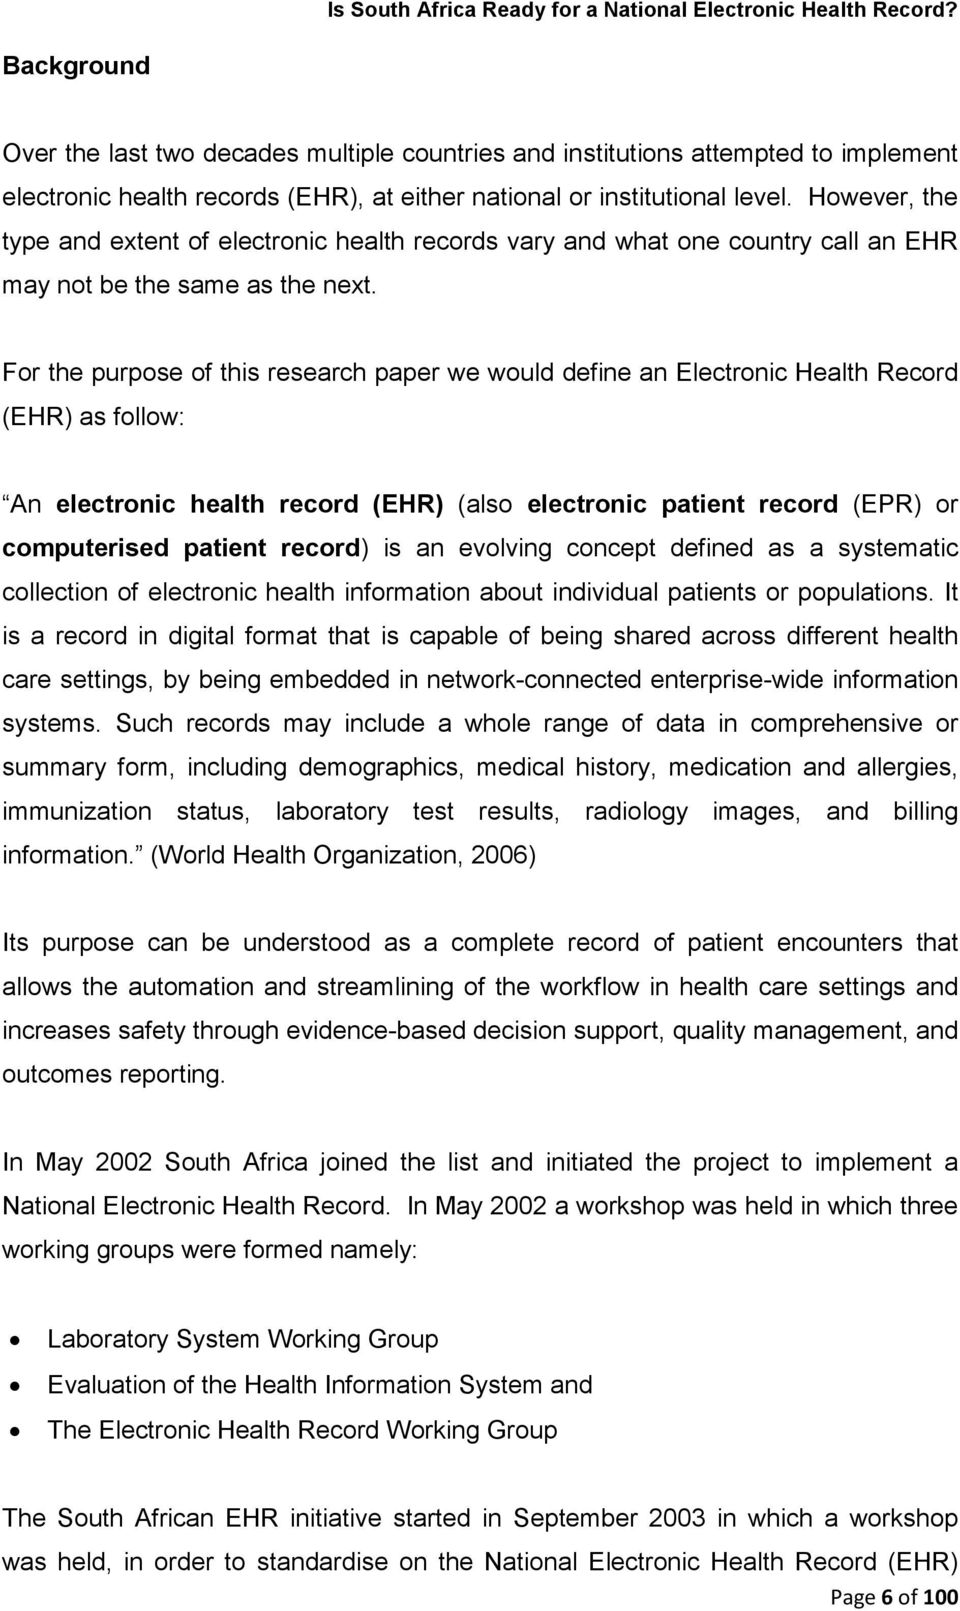 For the purpose of this research paper we would define an Electronic Health Record (EHR) as follow: An electronic health record (EHR) (also electronic patient record (EPR) or computerised patient